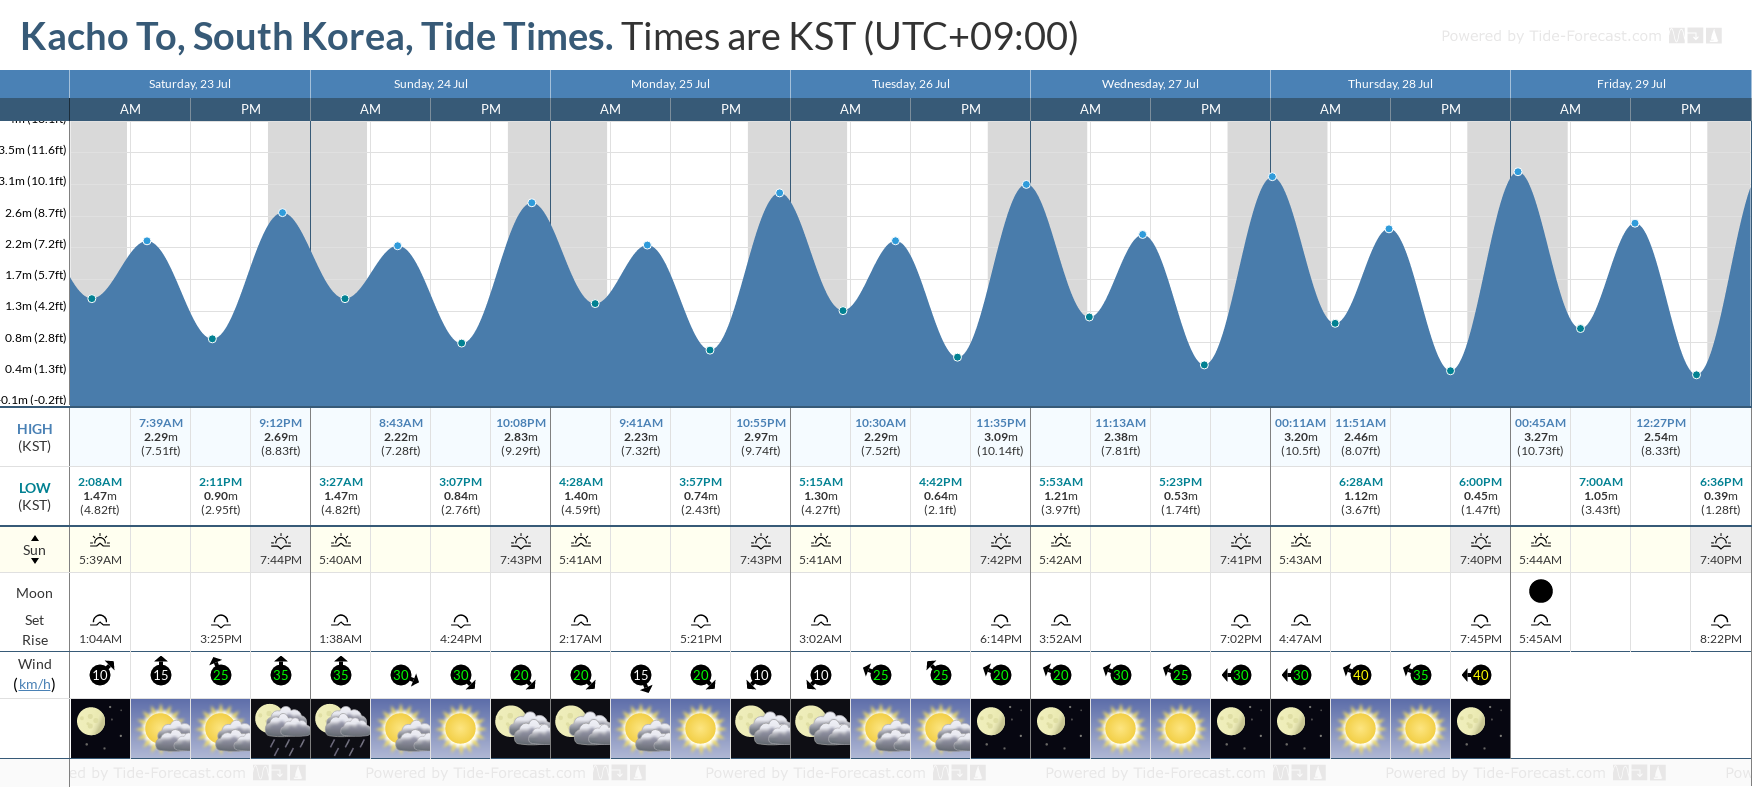 Kacho To, South Korea Tide Chart including high and low tide tide times for the next 7 days